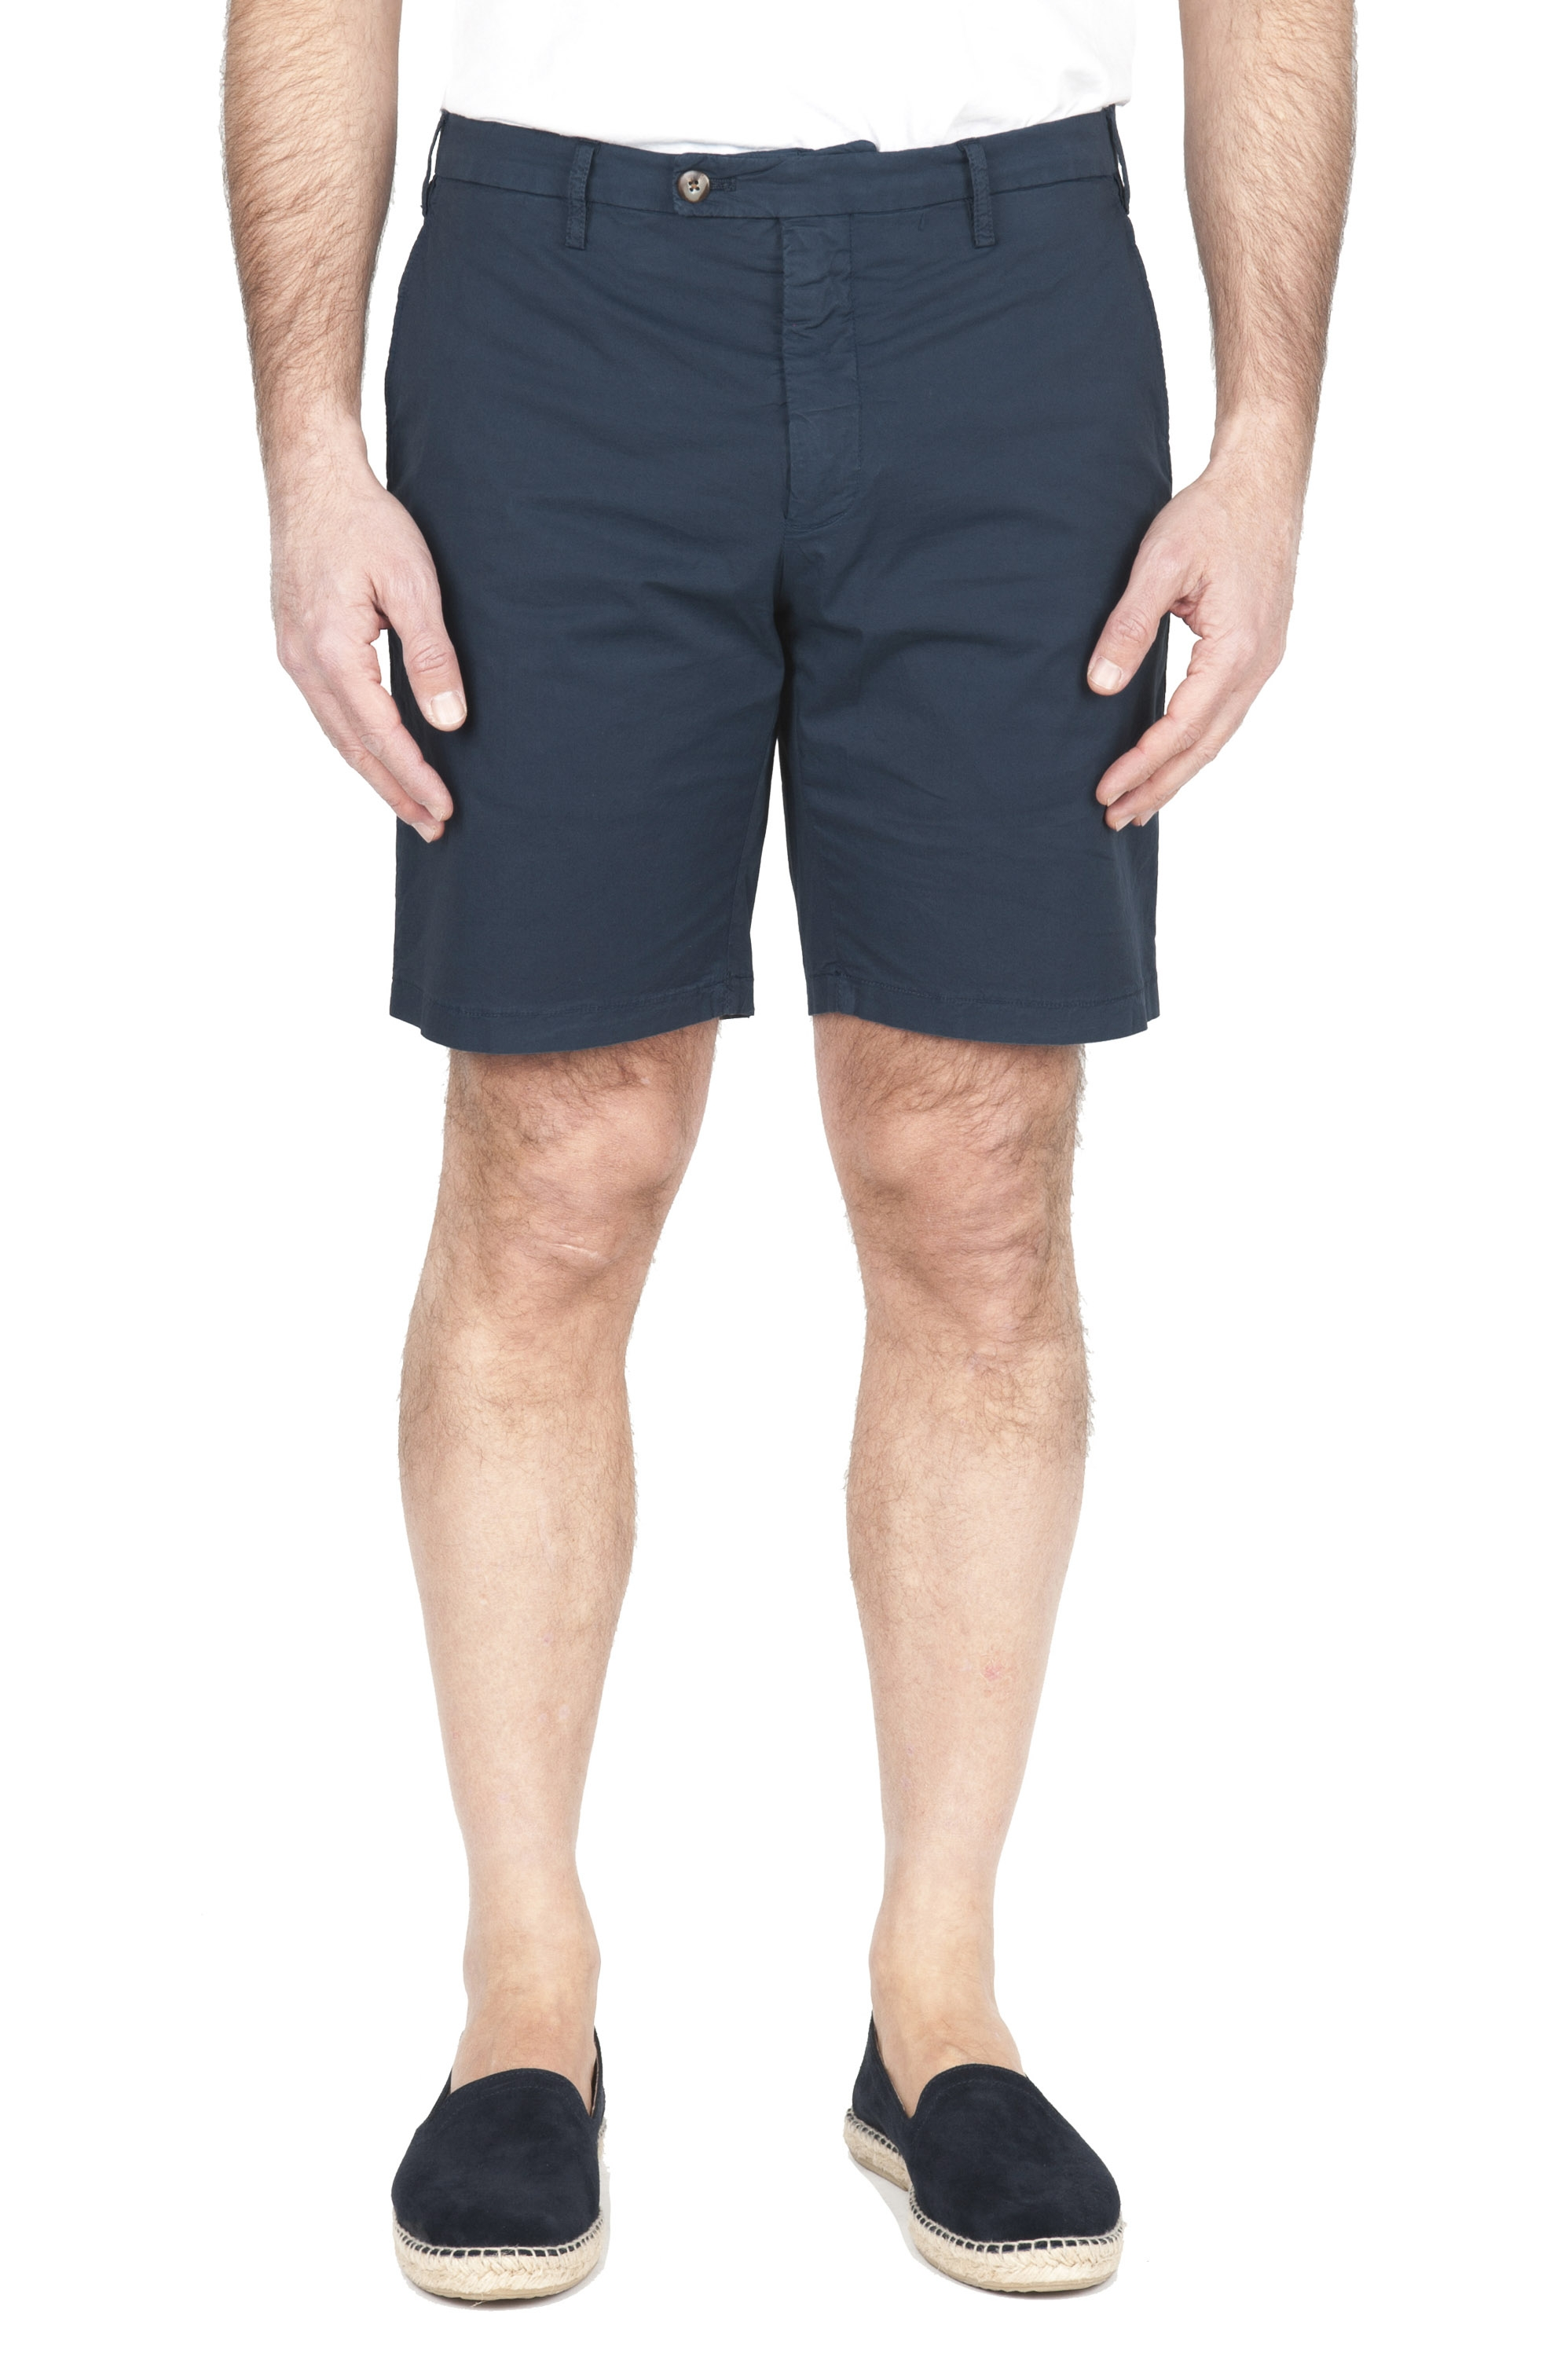 SBU 01955_2020SS Ultra-light chino short pants in navy blue stretch cotton 01